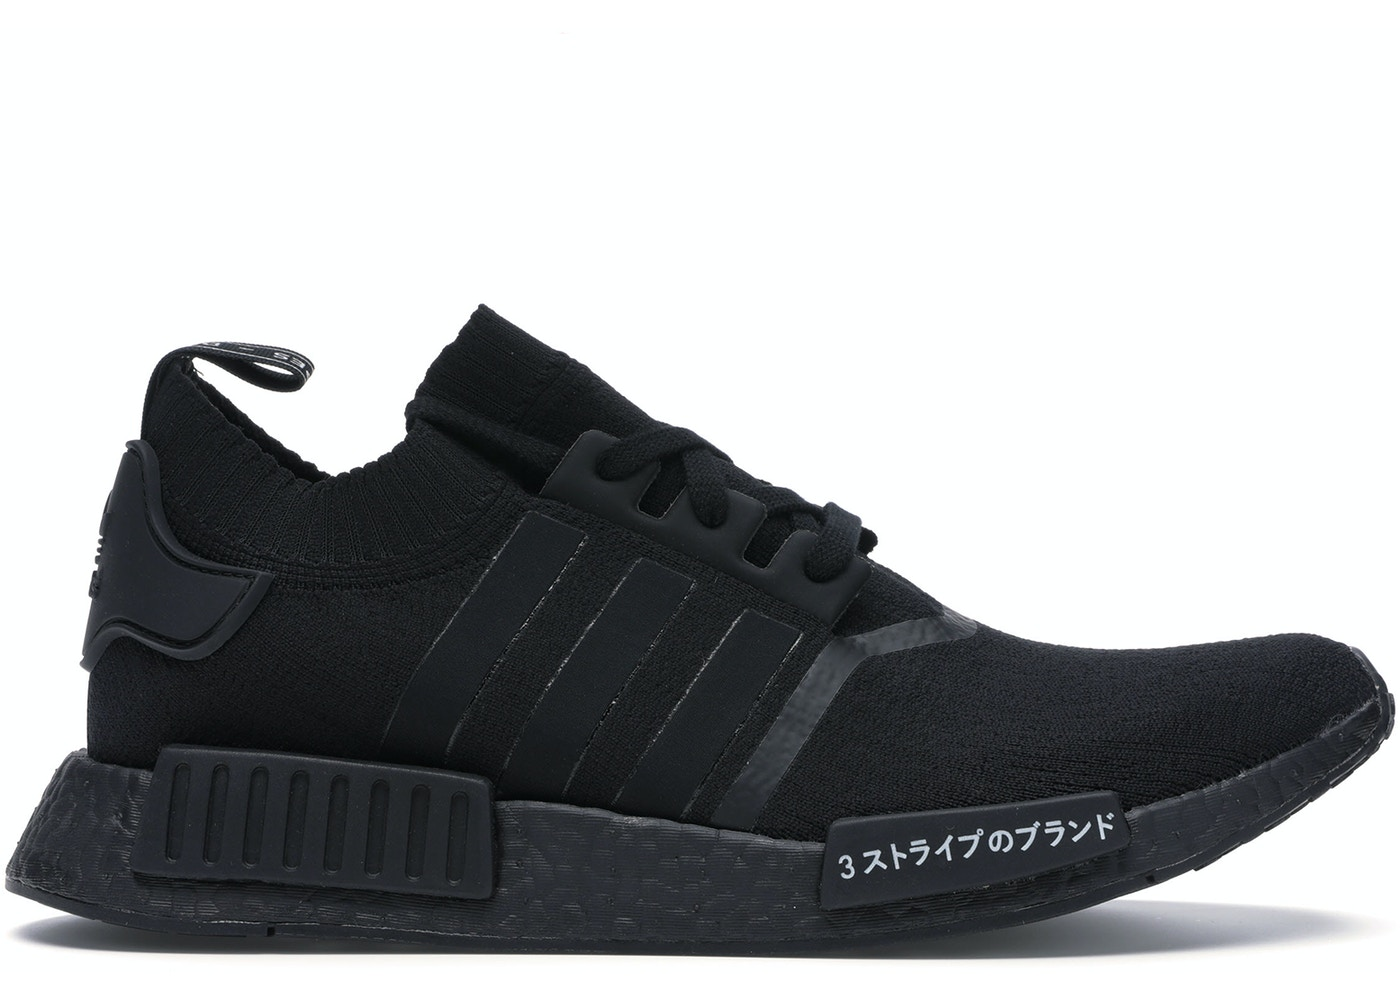 b5d6f983abd13 adidas NMD R1 Japan Triple Black - BZ0220